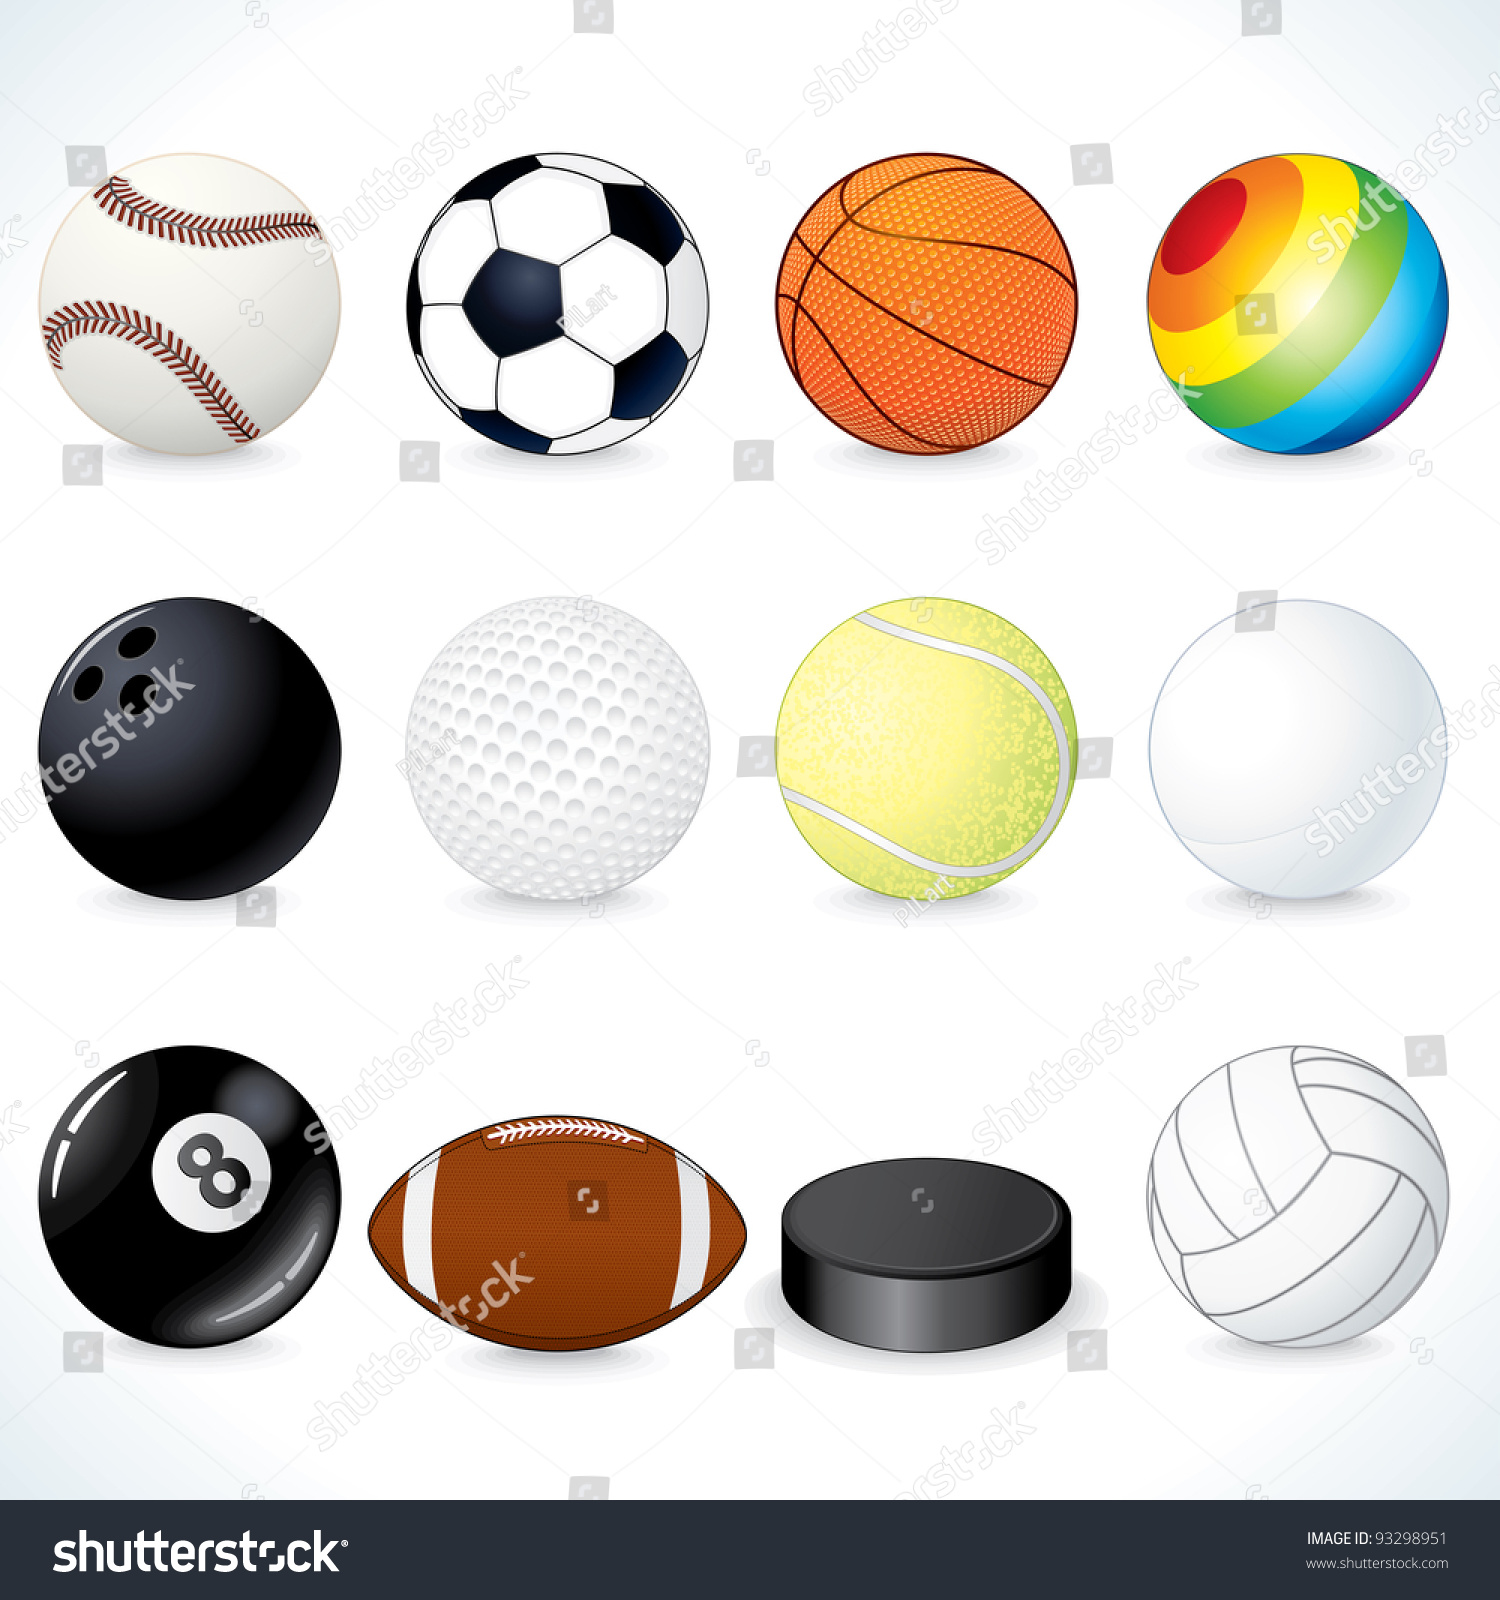 Vector Sport Clip Art Soccer Rugby Stock Vector 93298951 ...